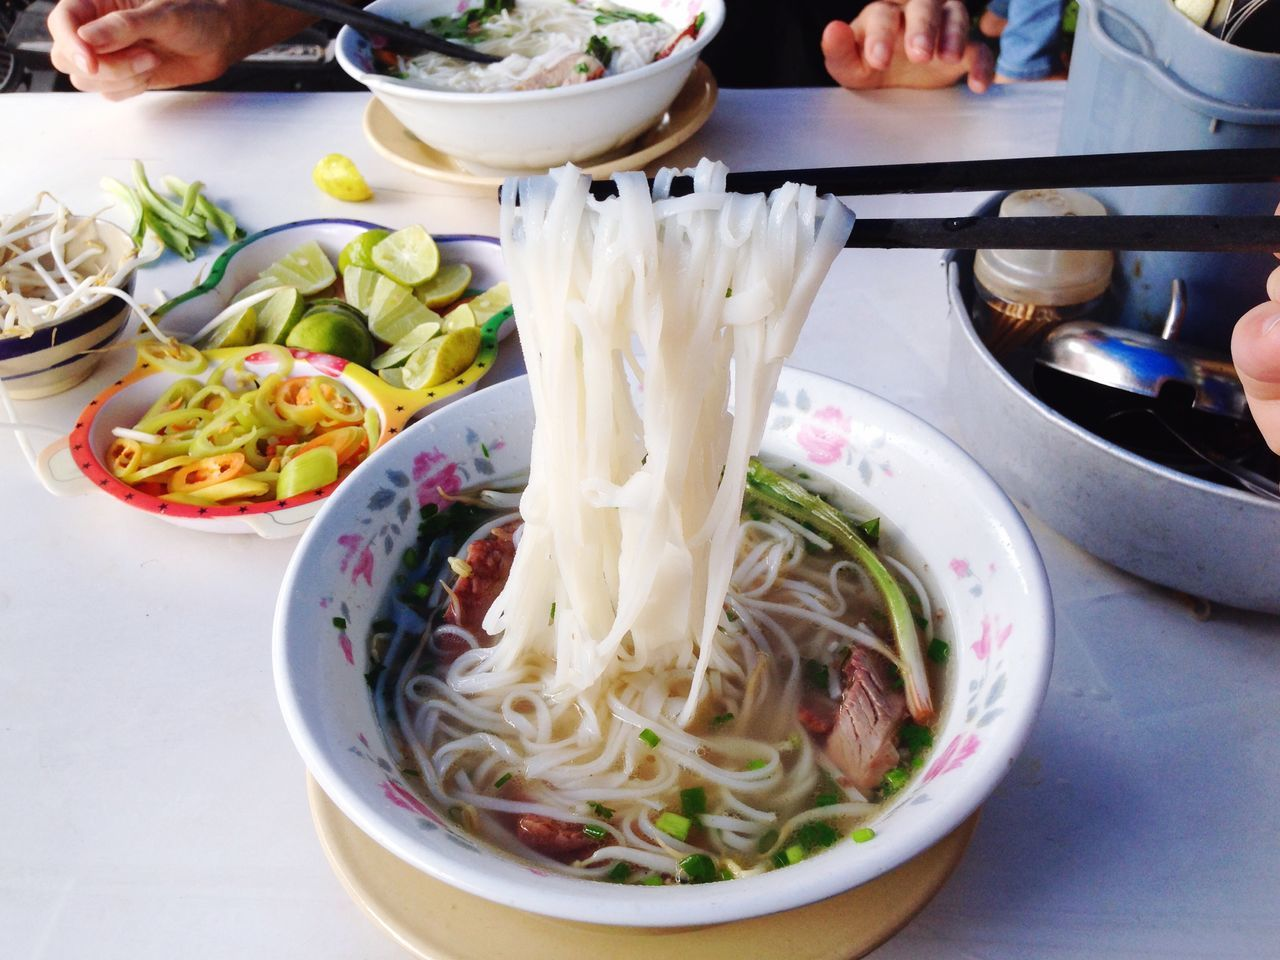 Chopsticks holding noodles in bowl on table